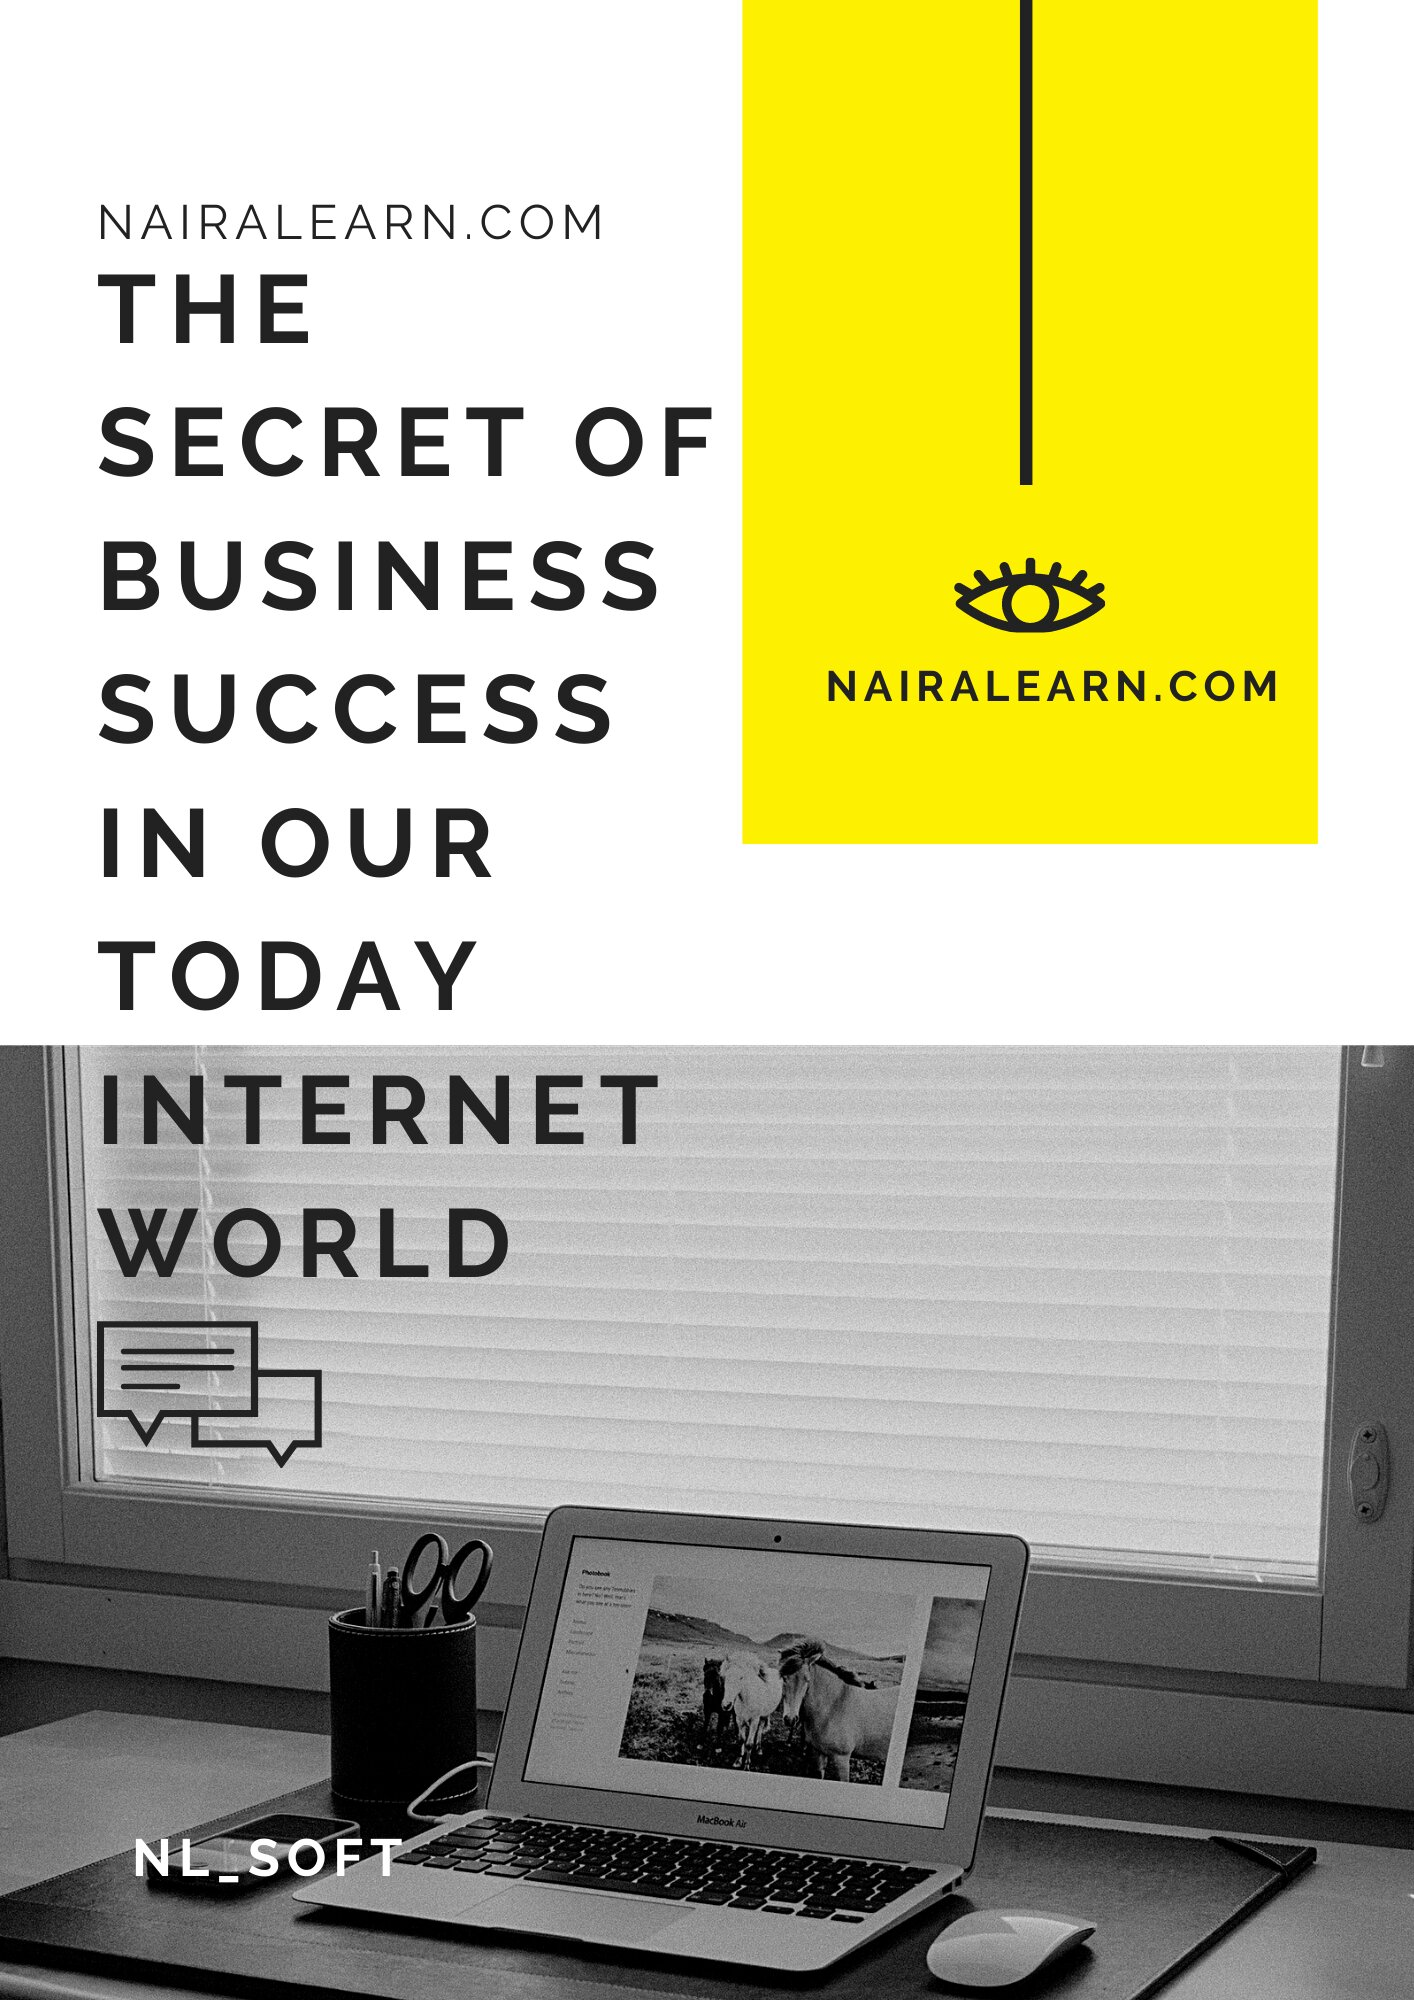 The Secret Of Business Success In Our Today Internet World